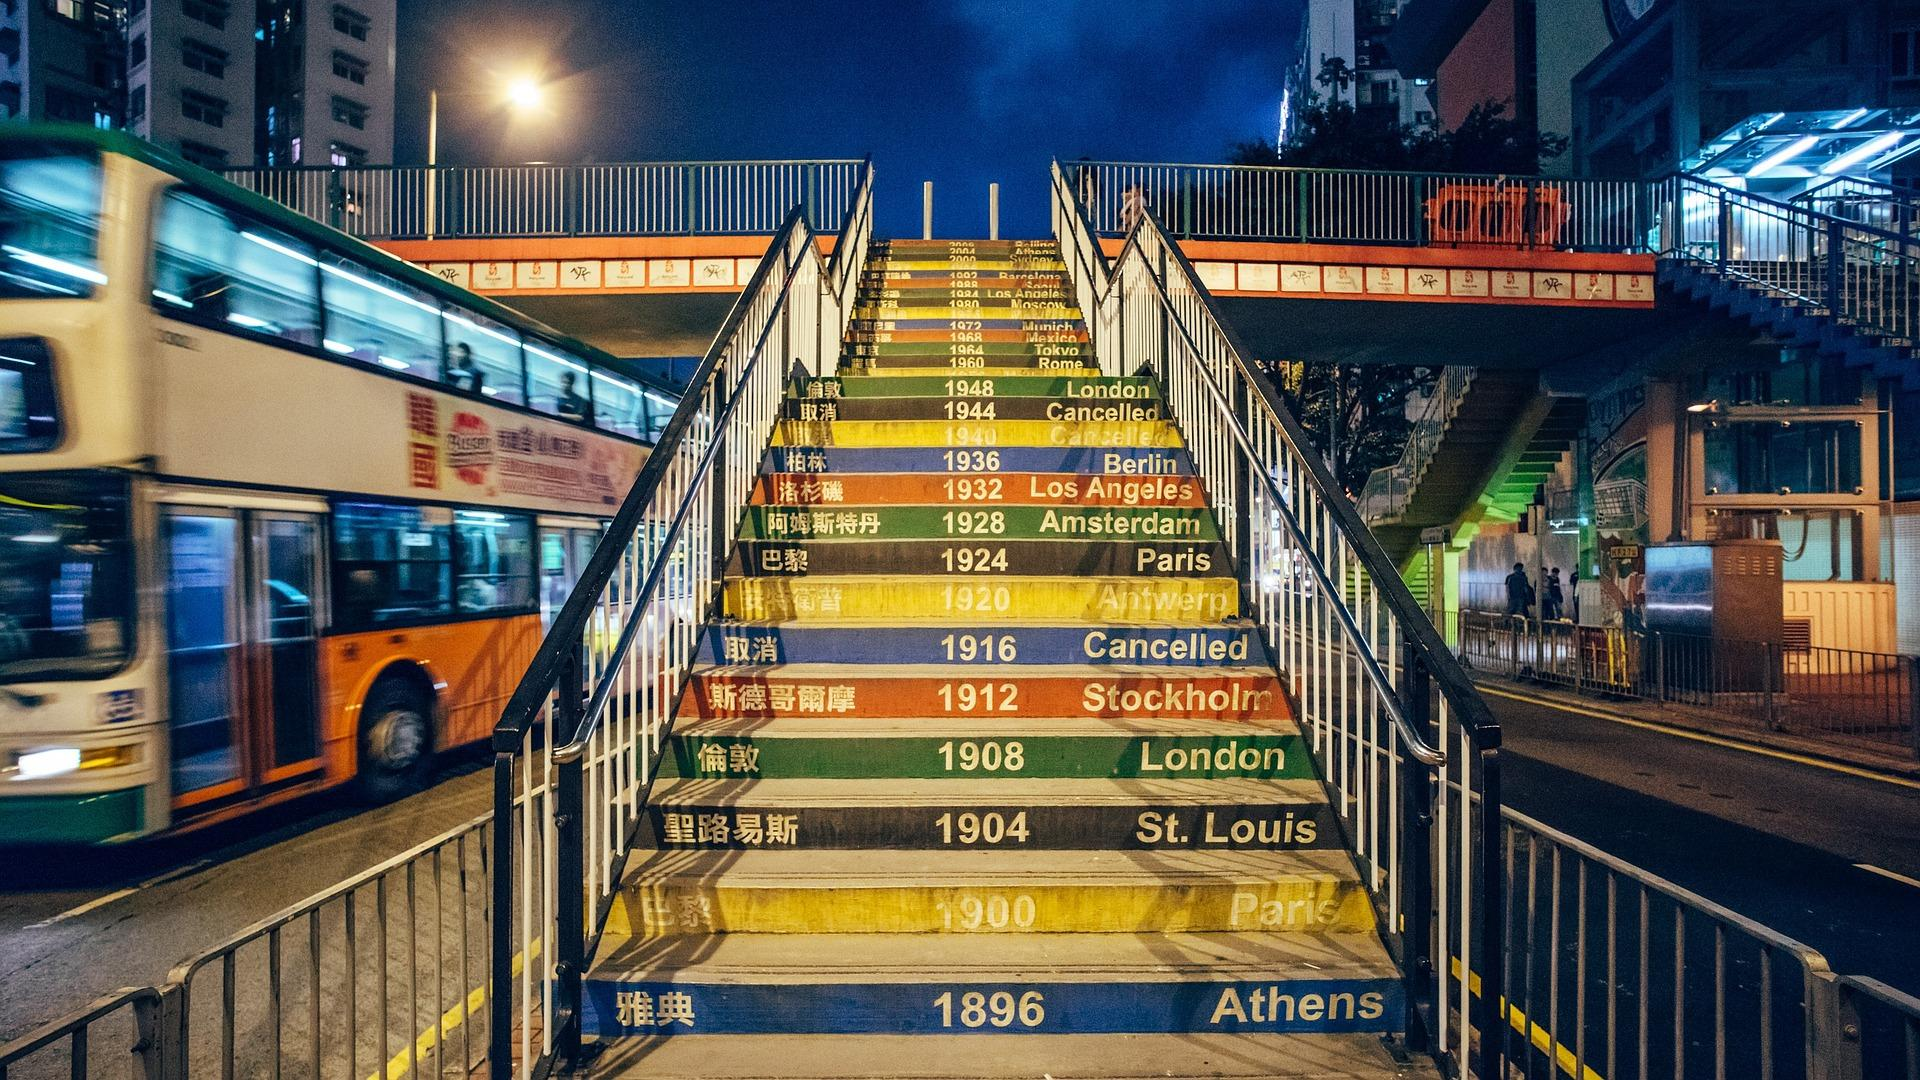 Mural of Olympic Game years painted on bridge steps in a city